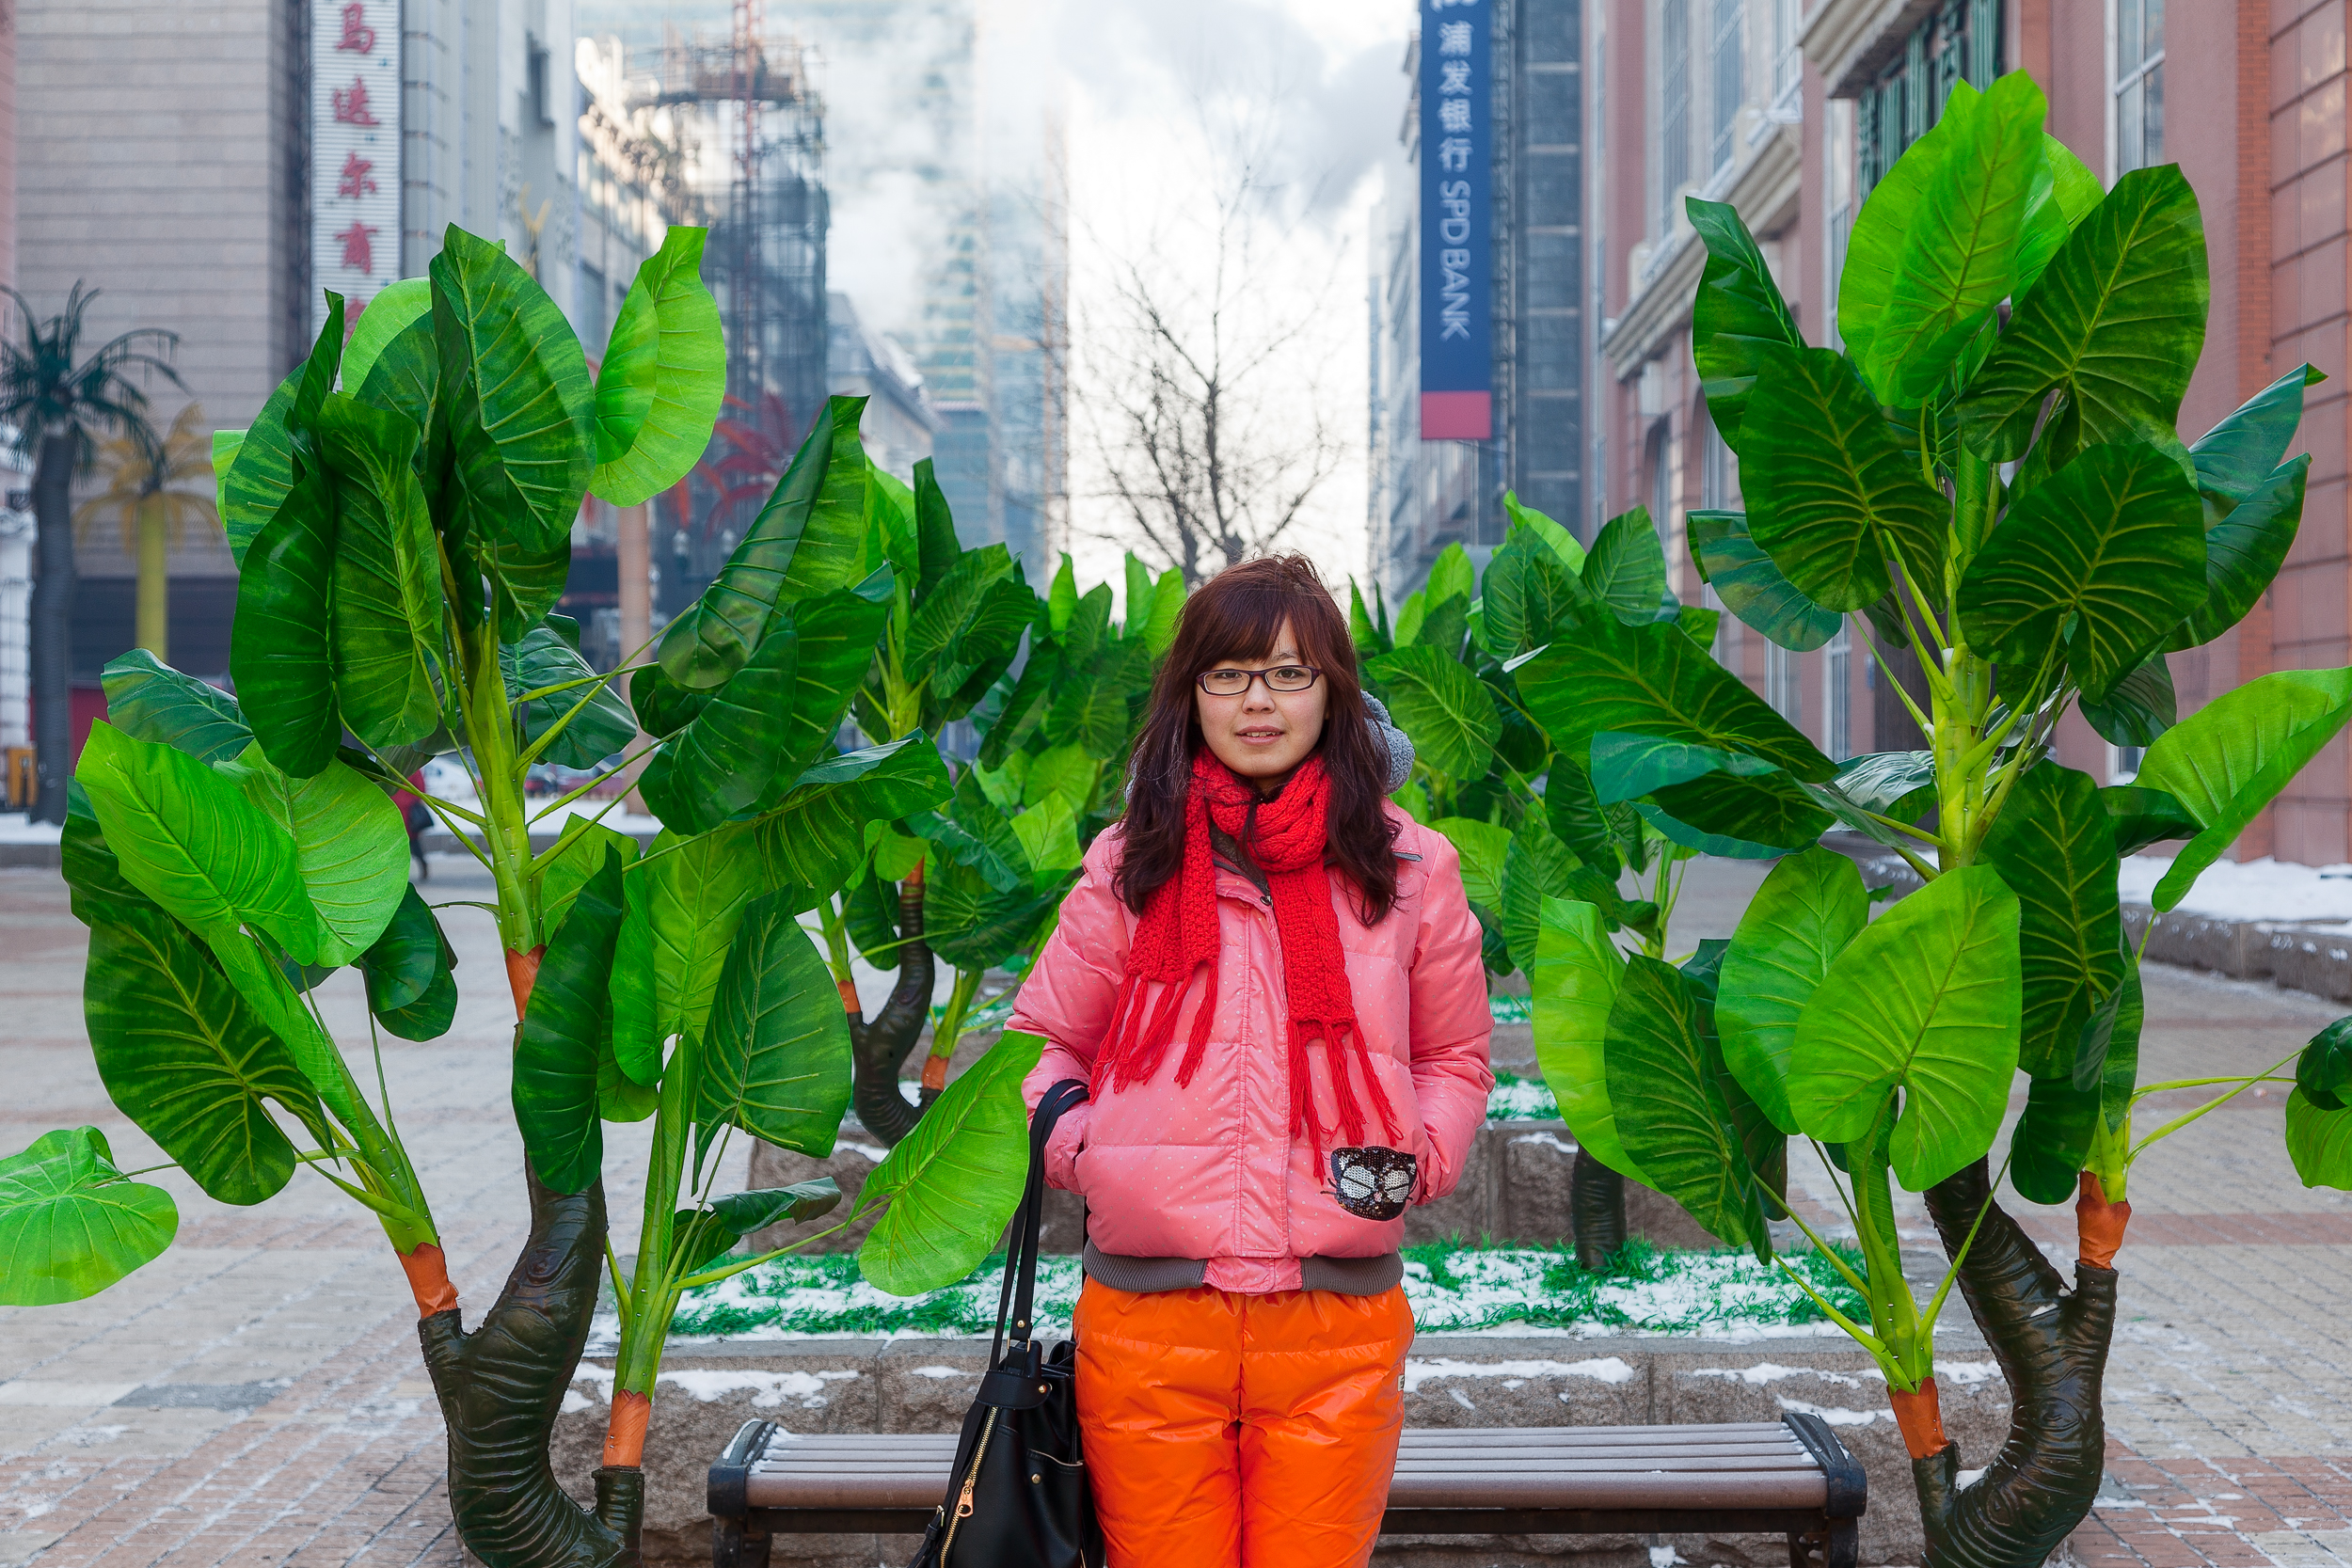 A  colorful portrait of a young woman  in  Harbin  in north east  China  on a  cold winter's day .